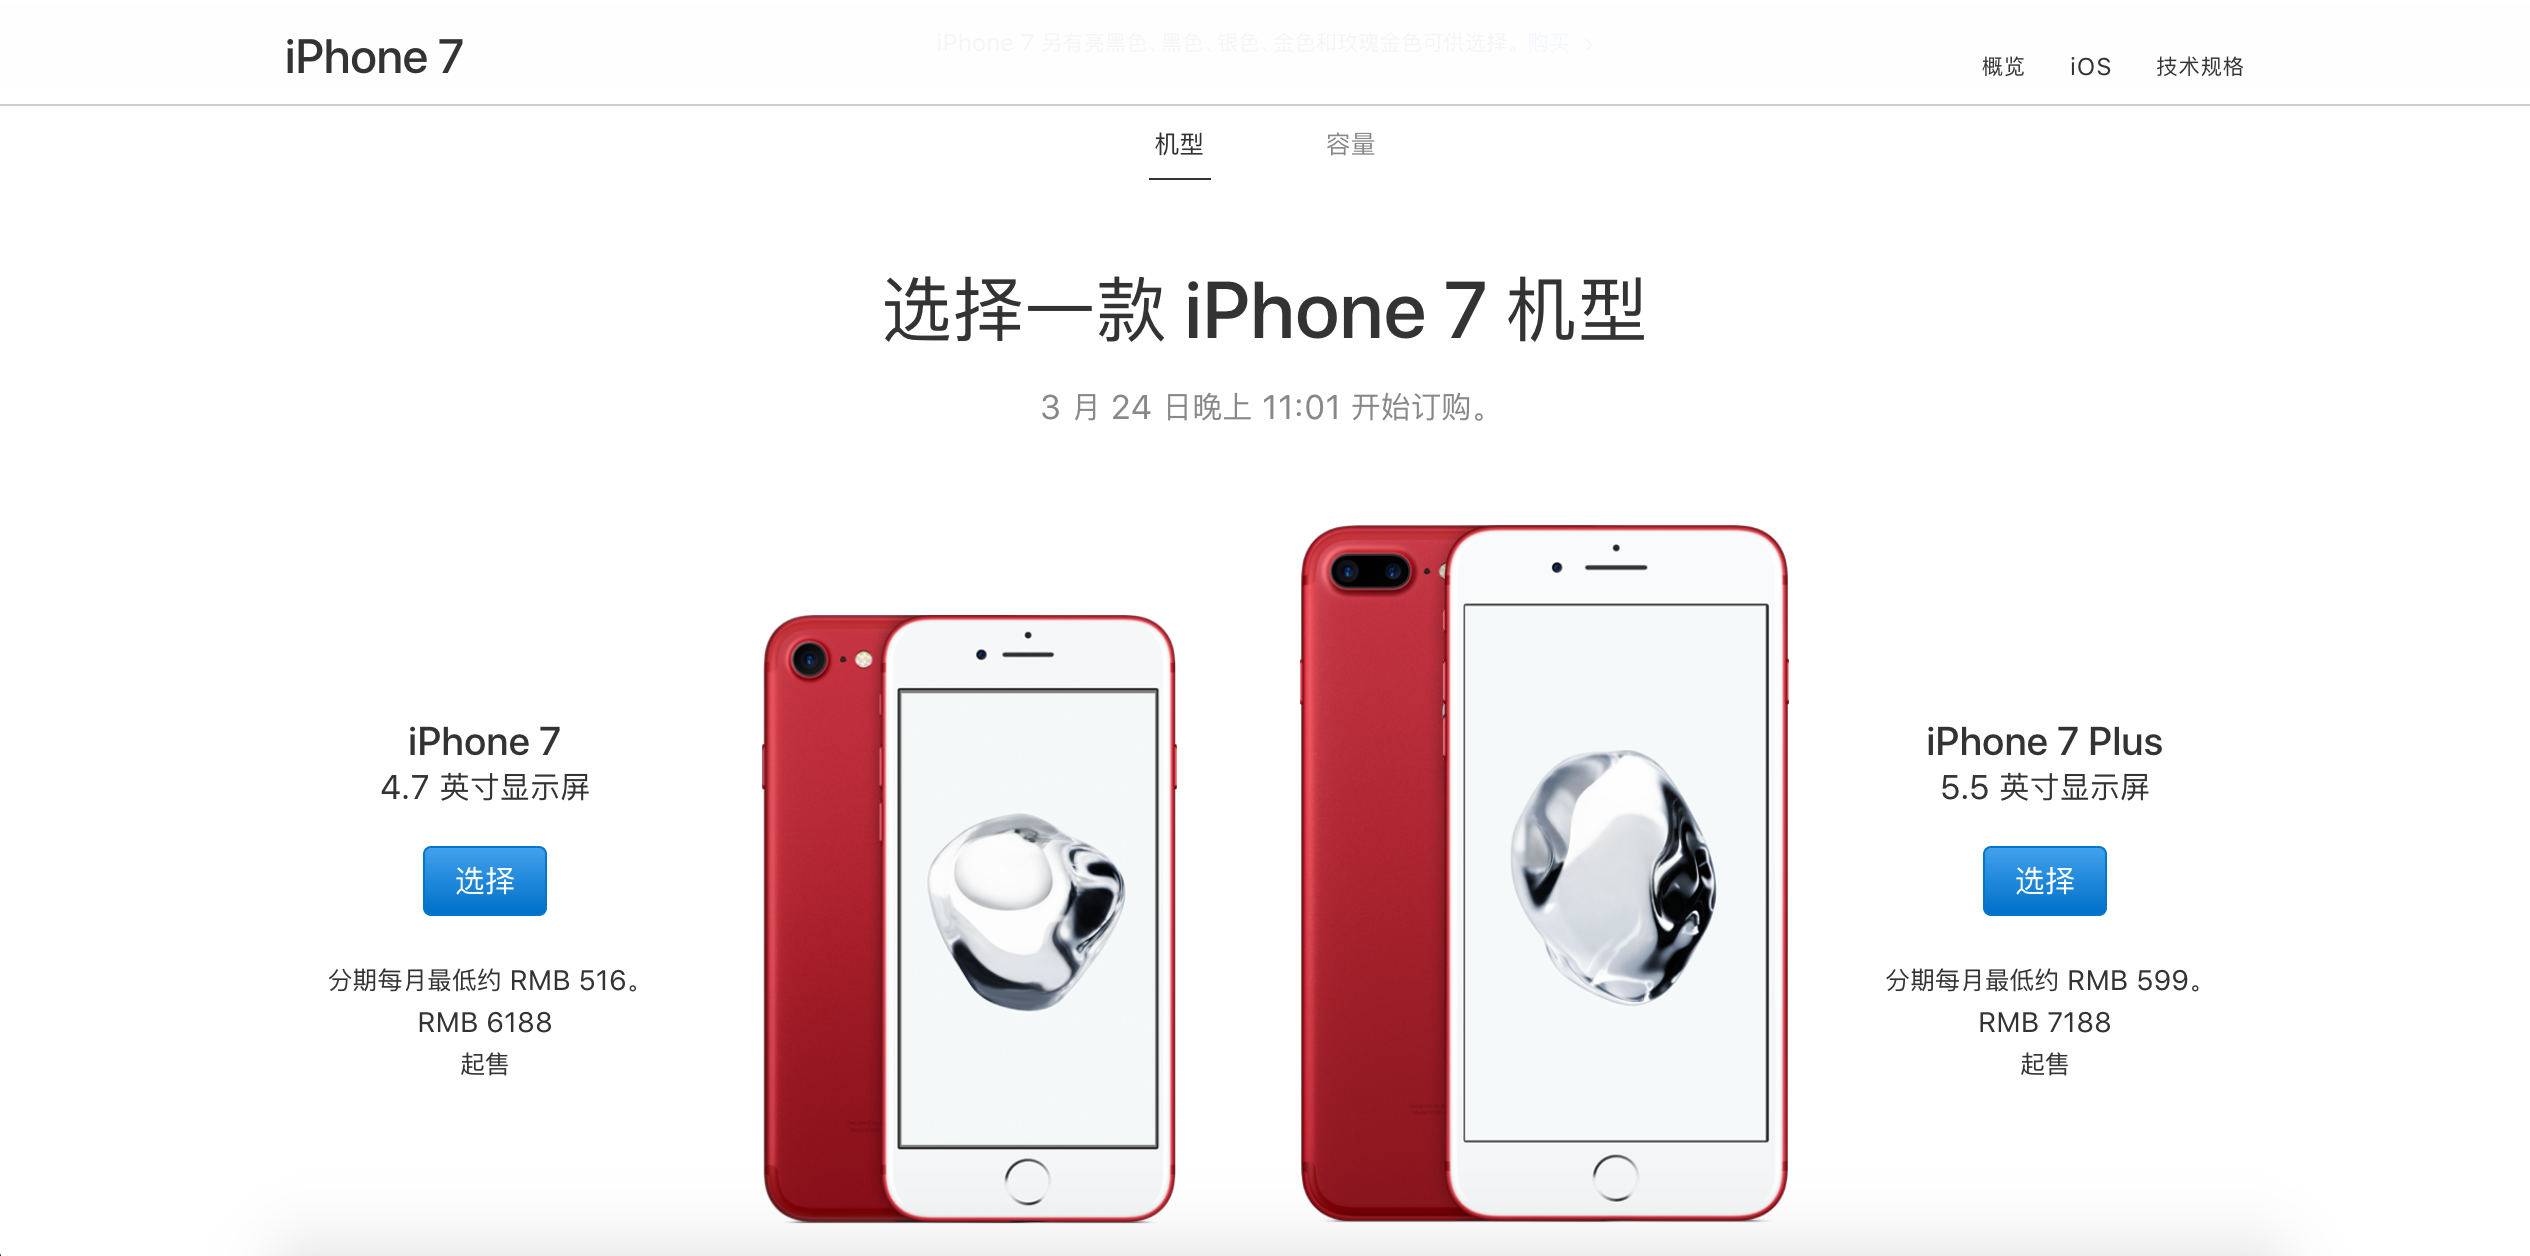 Sur le site chinois d'Apple, nulle mention du label (RED). (Capture d'écran Apple.com/cn)